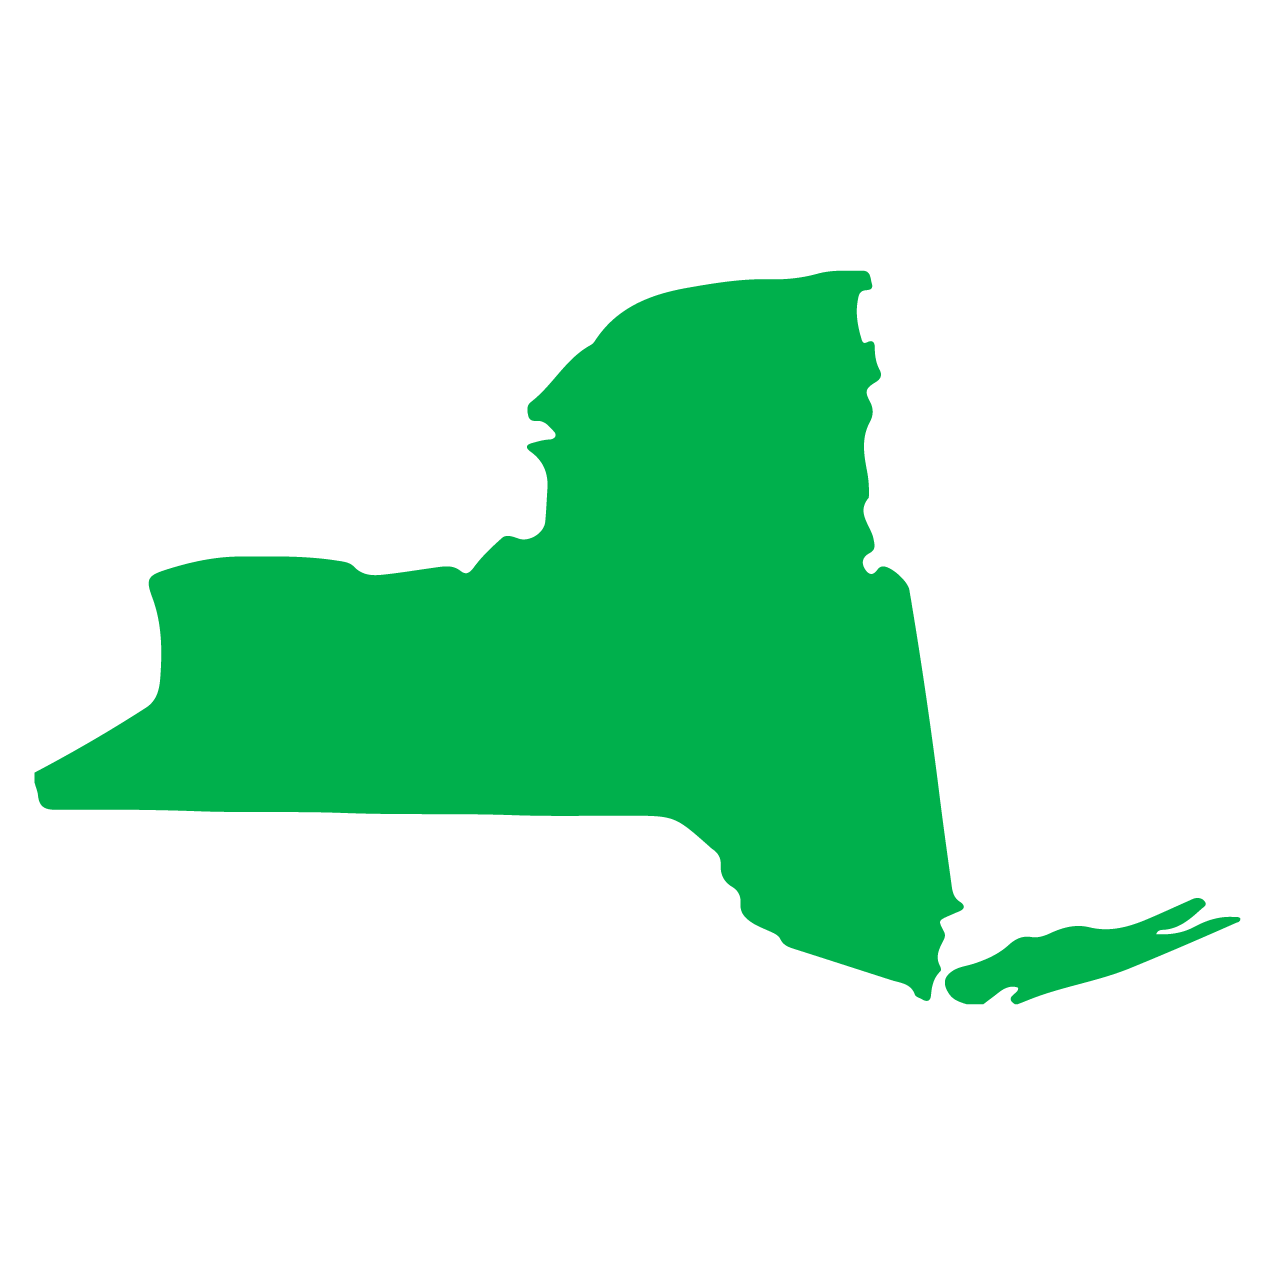 States_New York.png